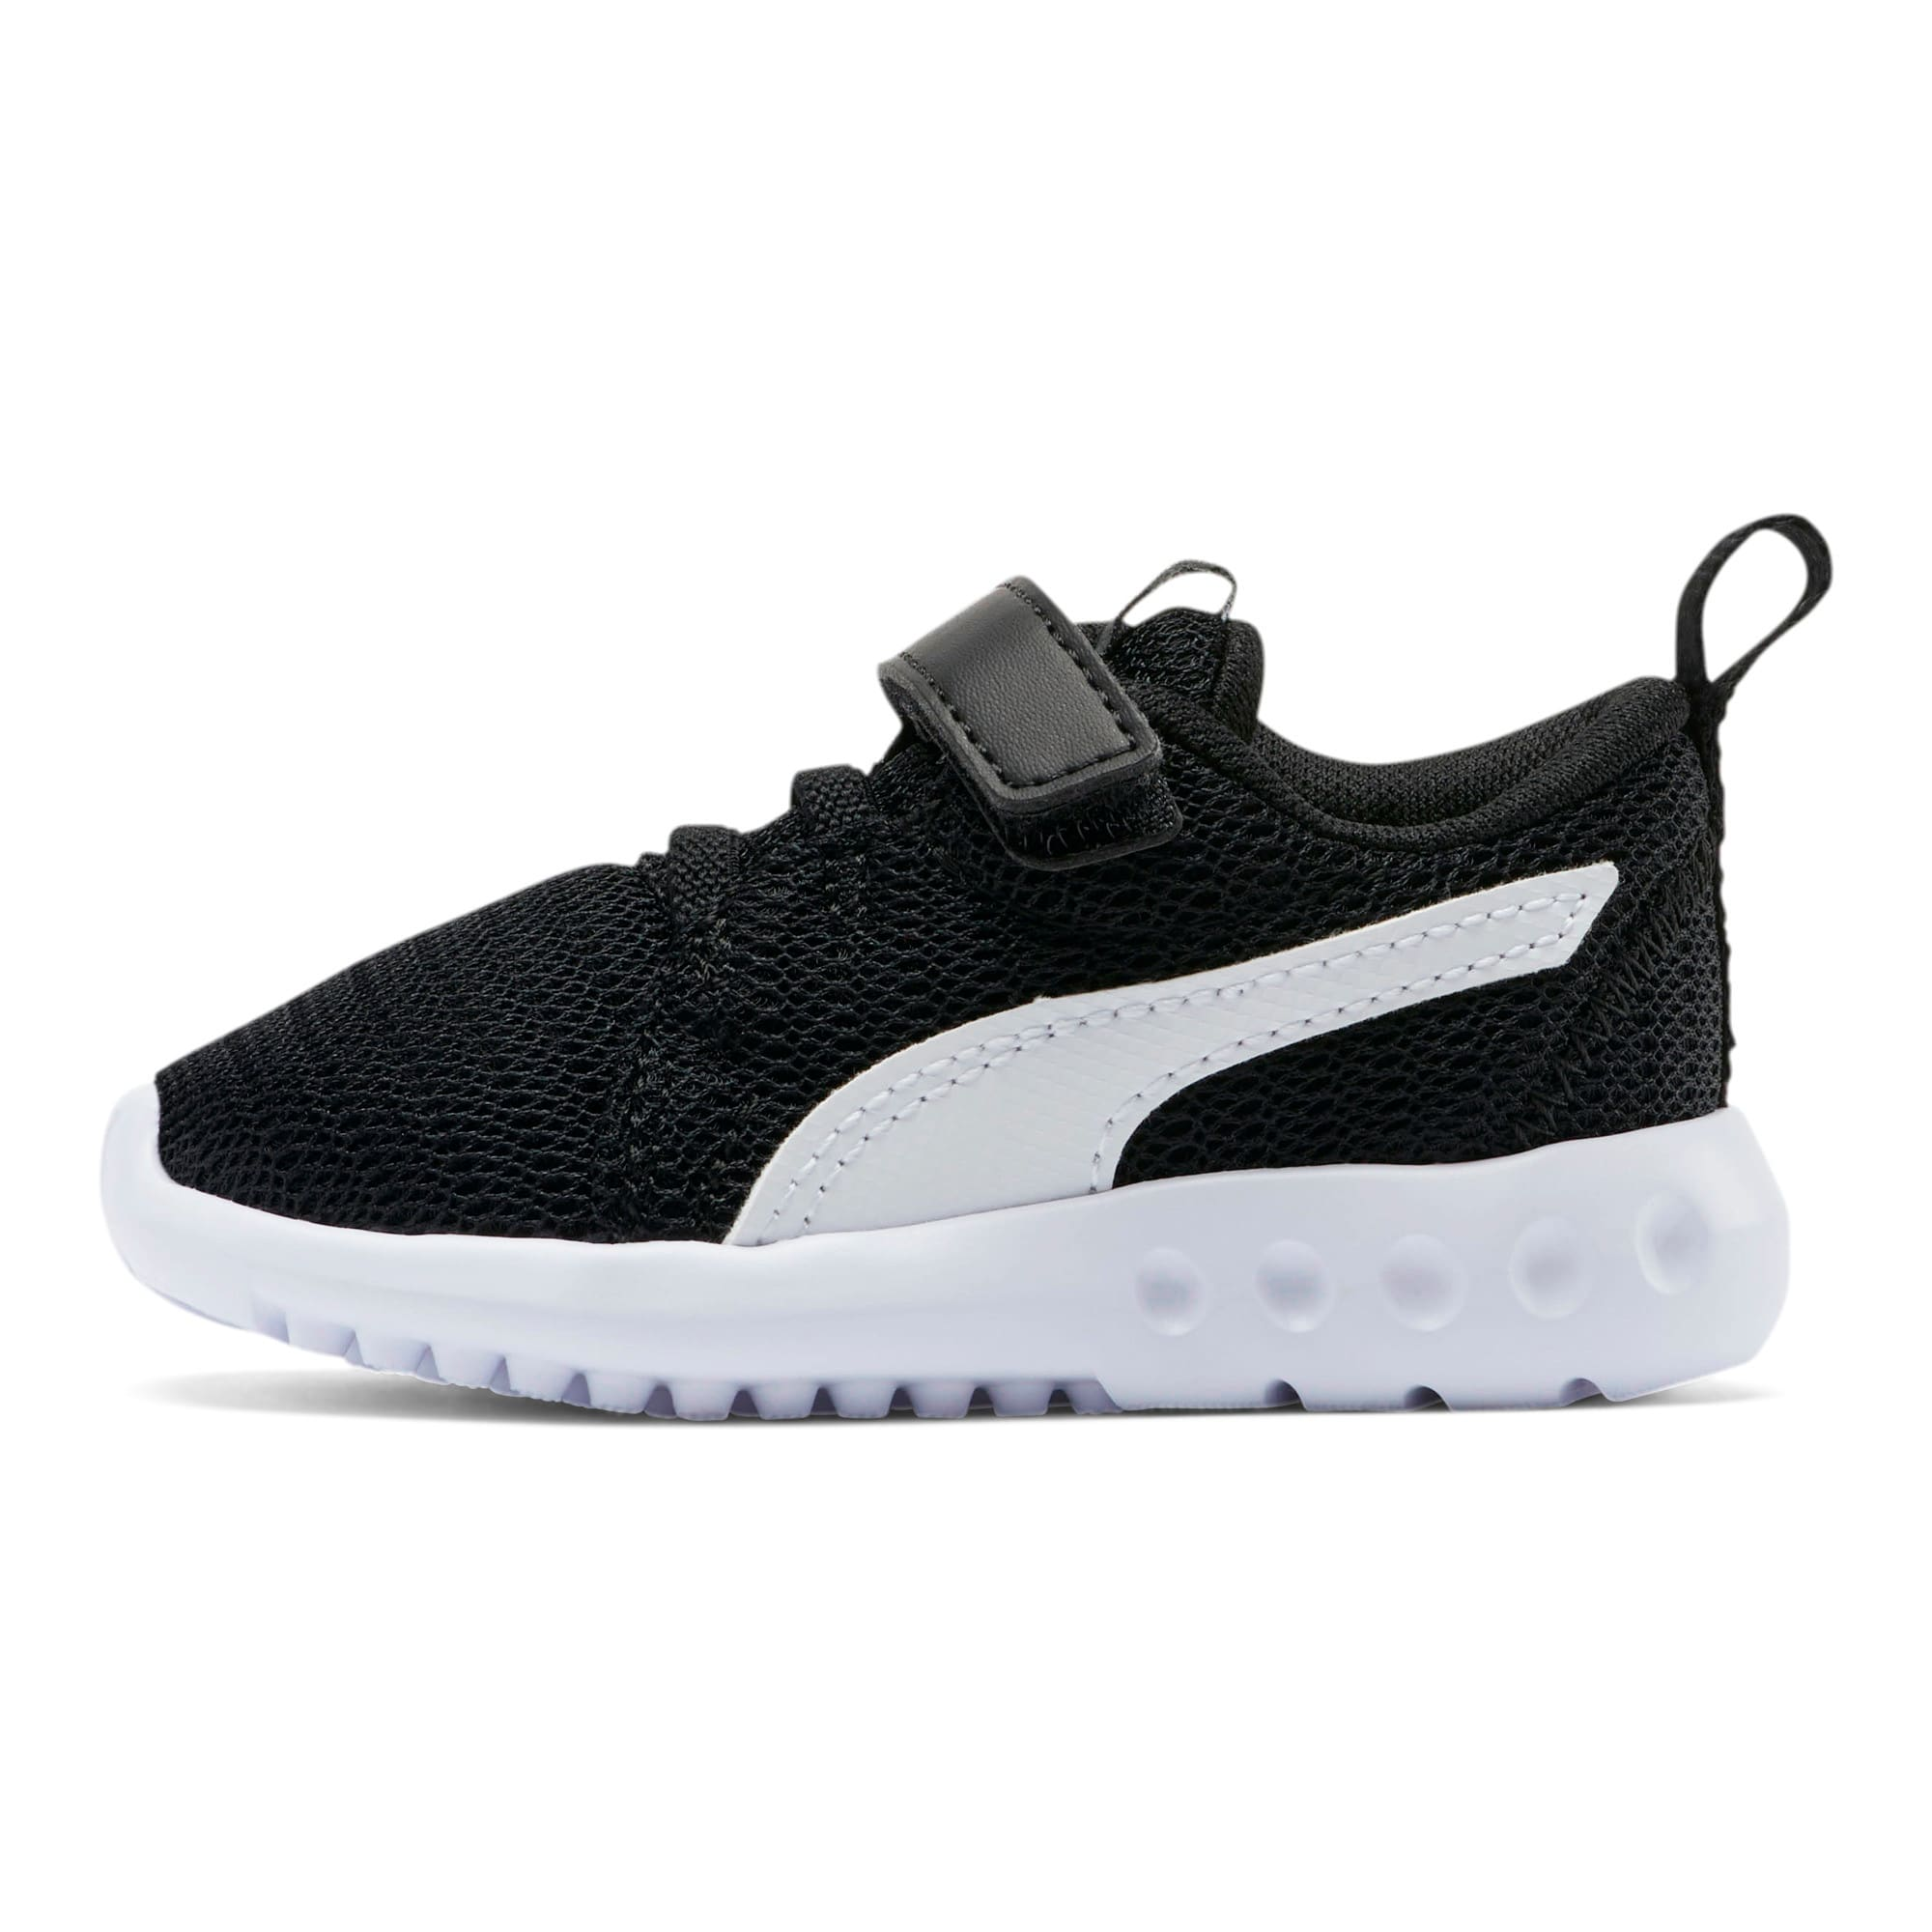 Thumbnail 1 of Carson 2 Toddler Shoes, Puma Black-Puma White, medium